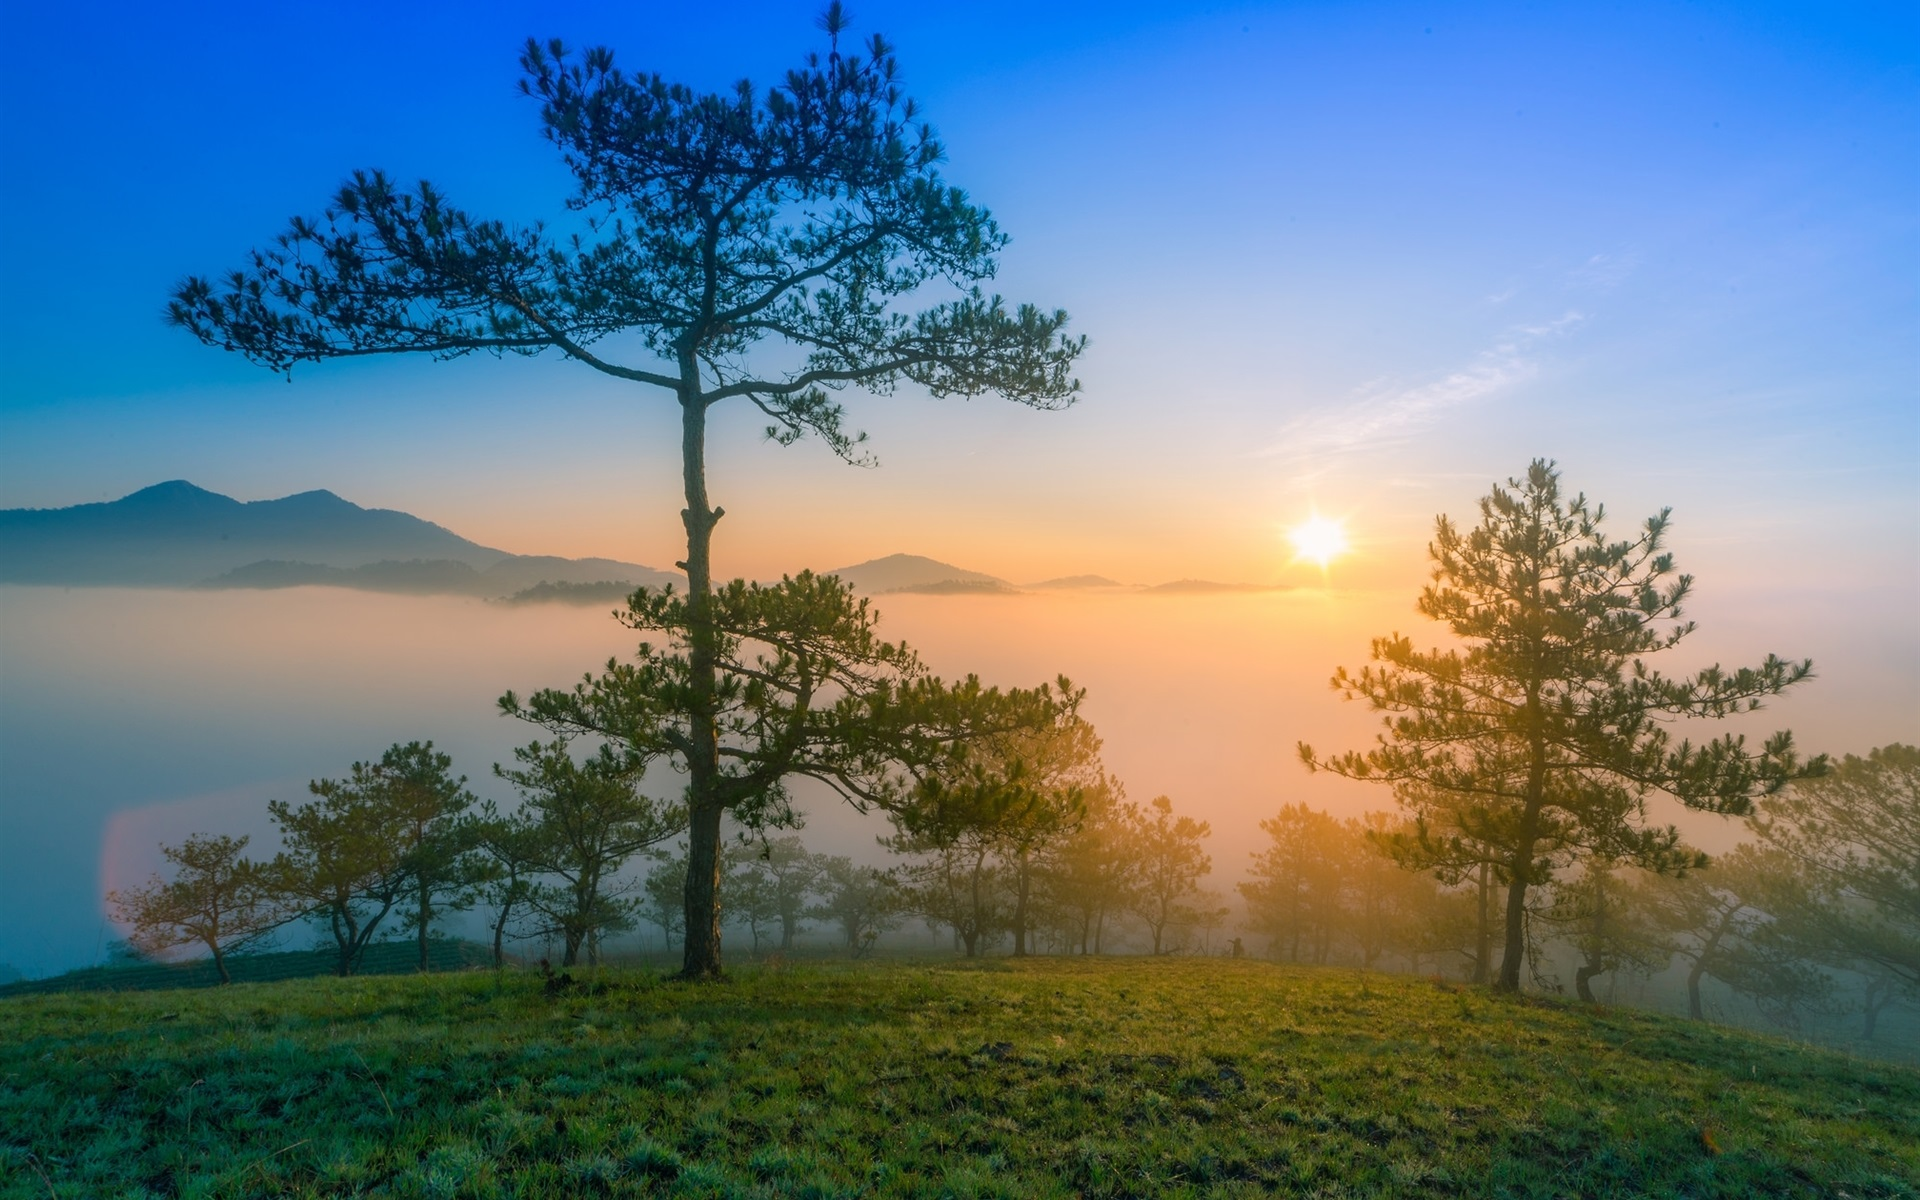 wallpaper dawn nature scenery, morning, mountains, pine trees, fog